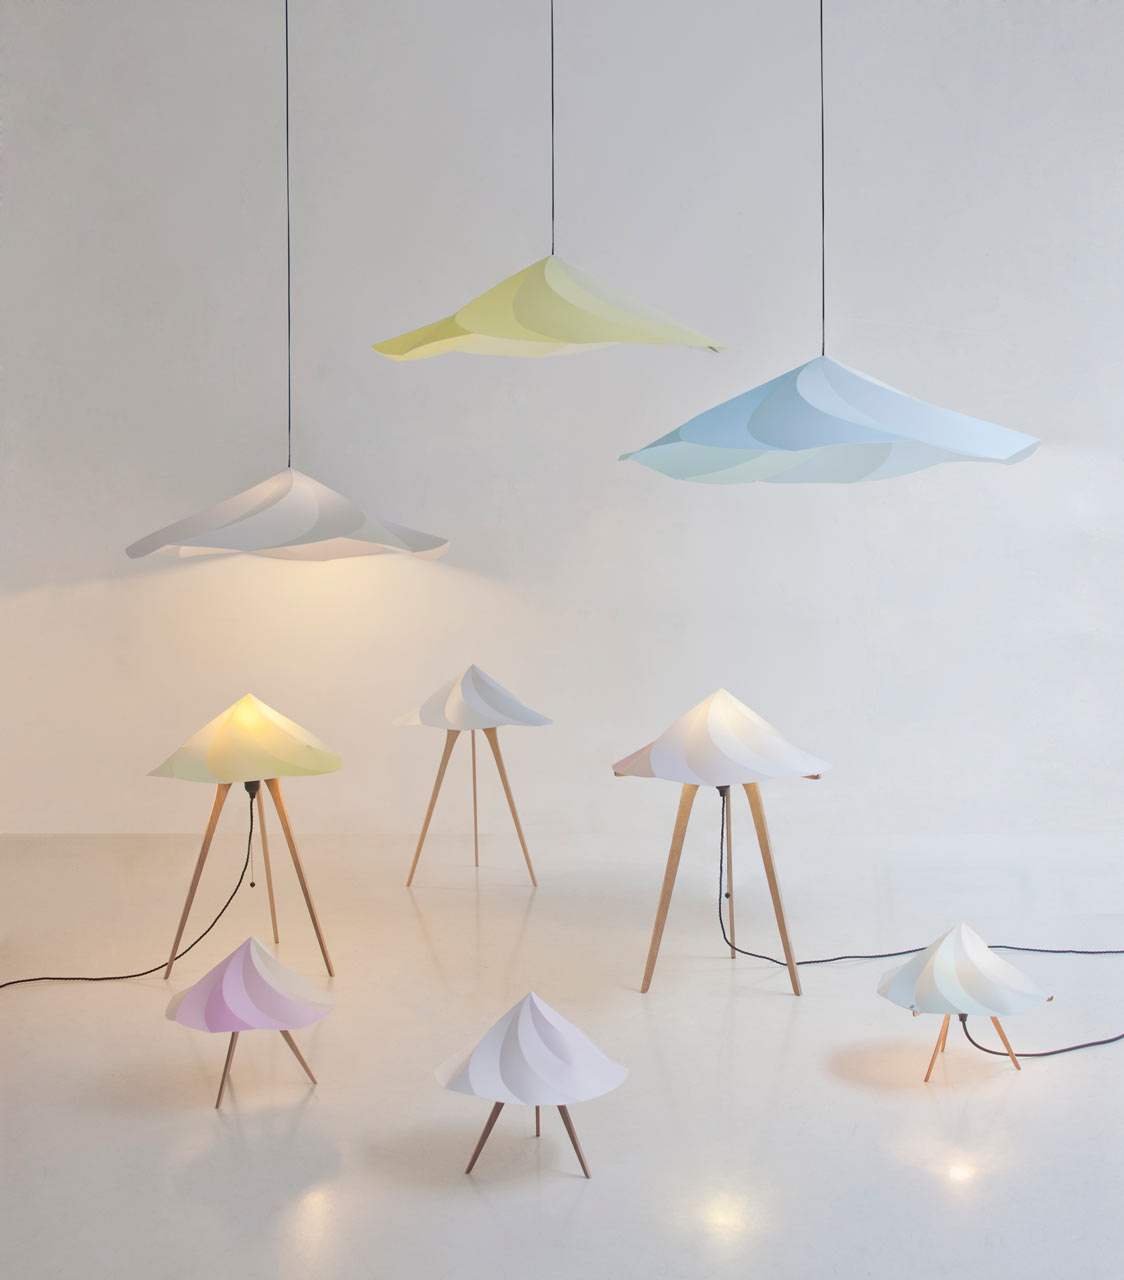 Chantilly Lamps by Constance Guisset for Moustache